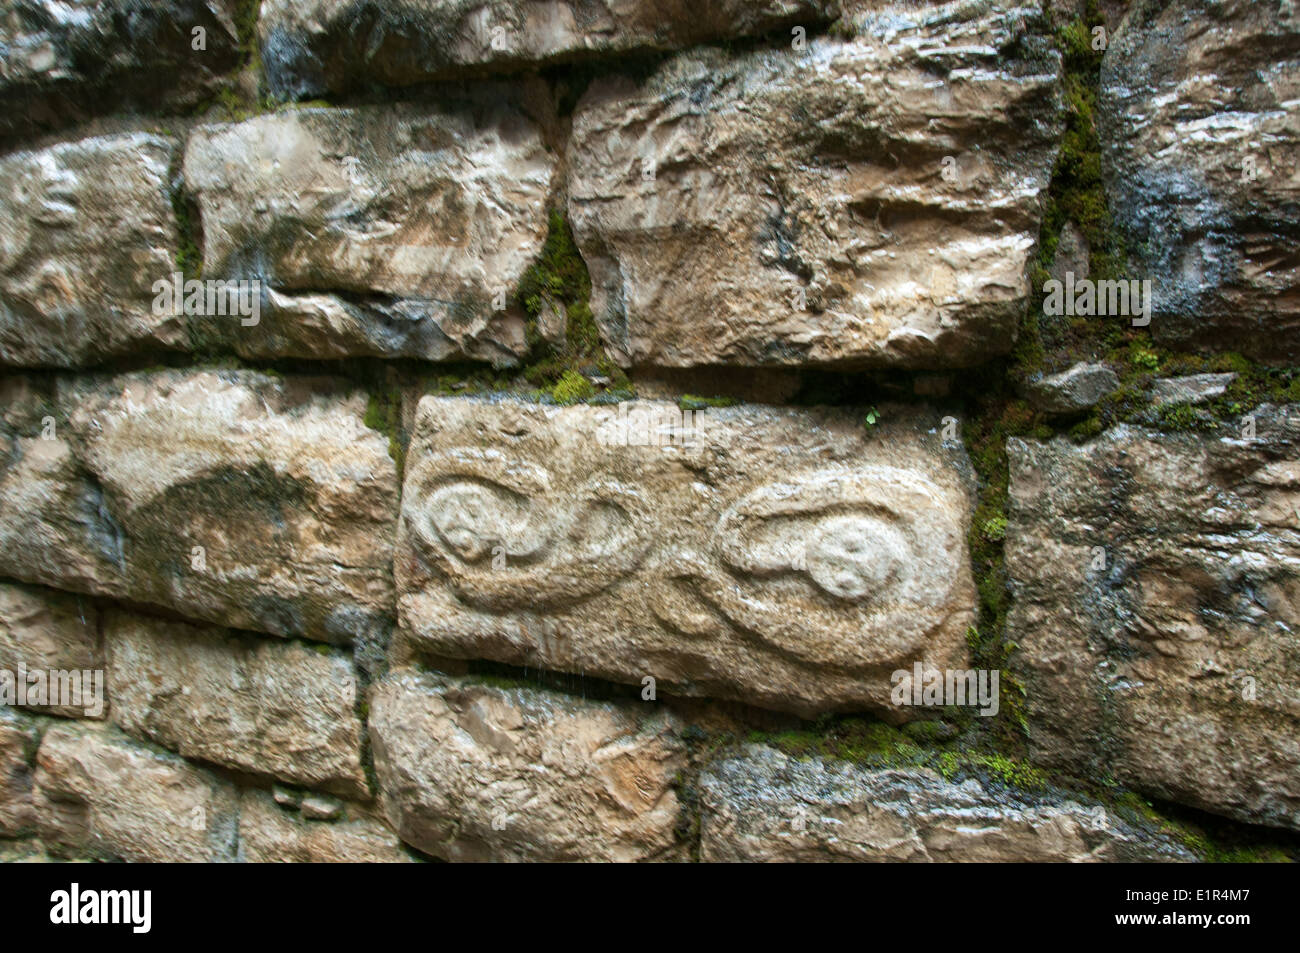 Stone Carvings in Walls at Kuelap Archaelogical Zone in Northern Peru - Stock Image